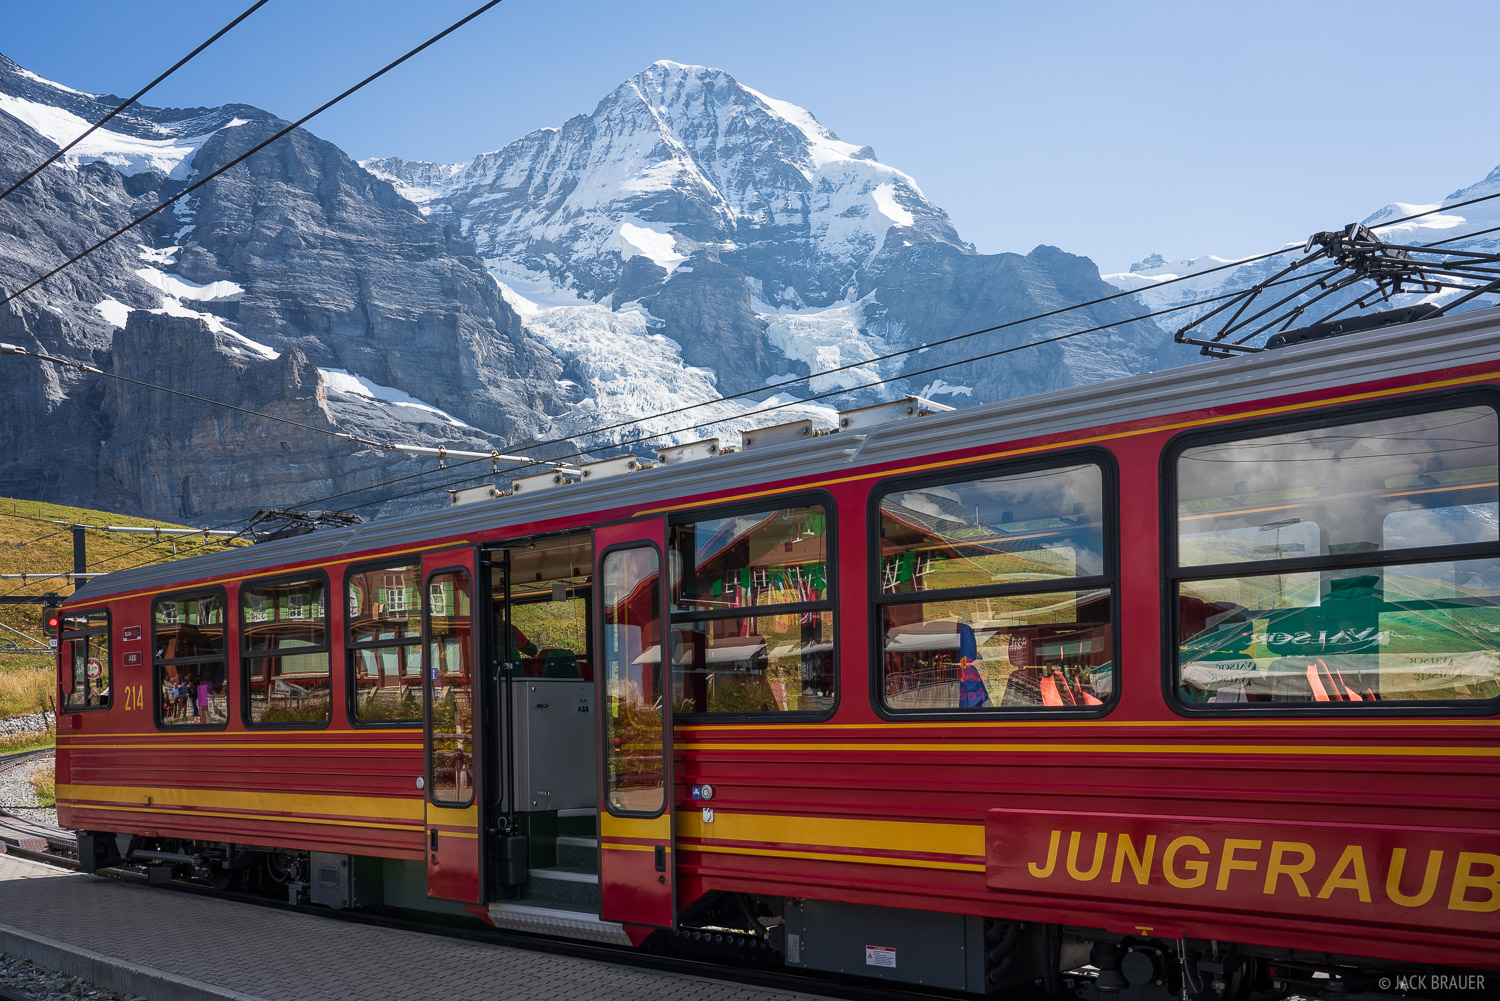 Bernese Alps, Jungfraubahn, Kleine Scheidegg, Mönch, Switzerland, train, photo